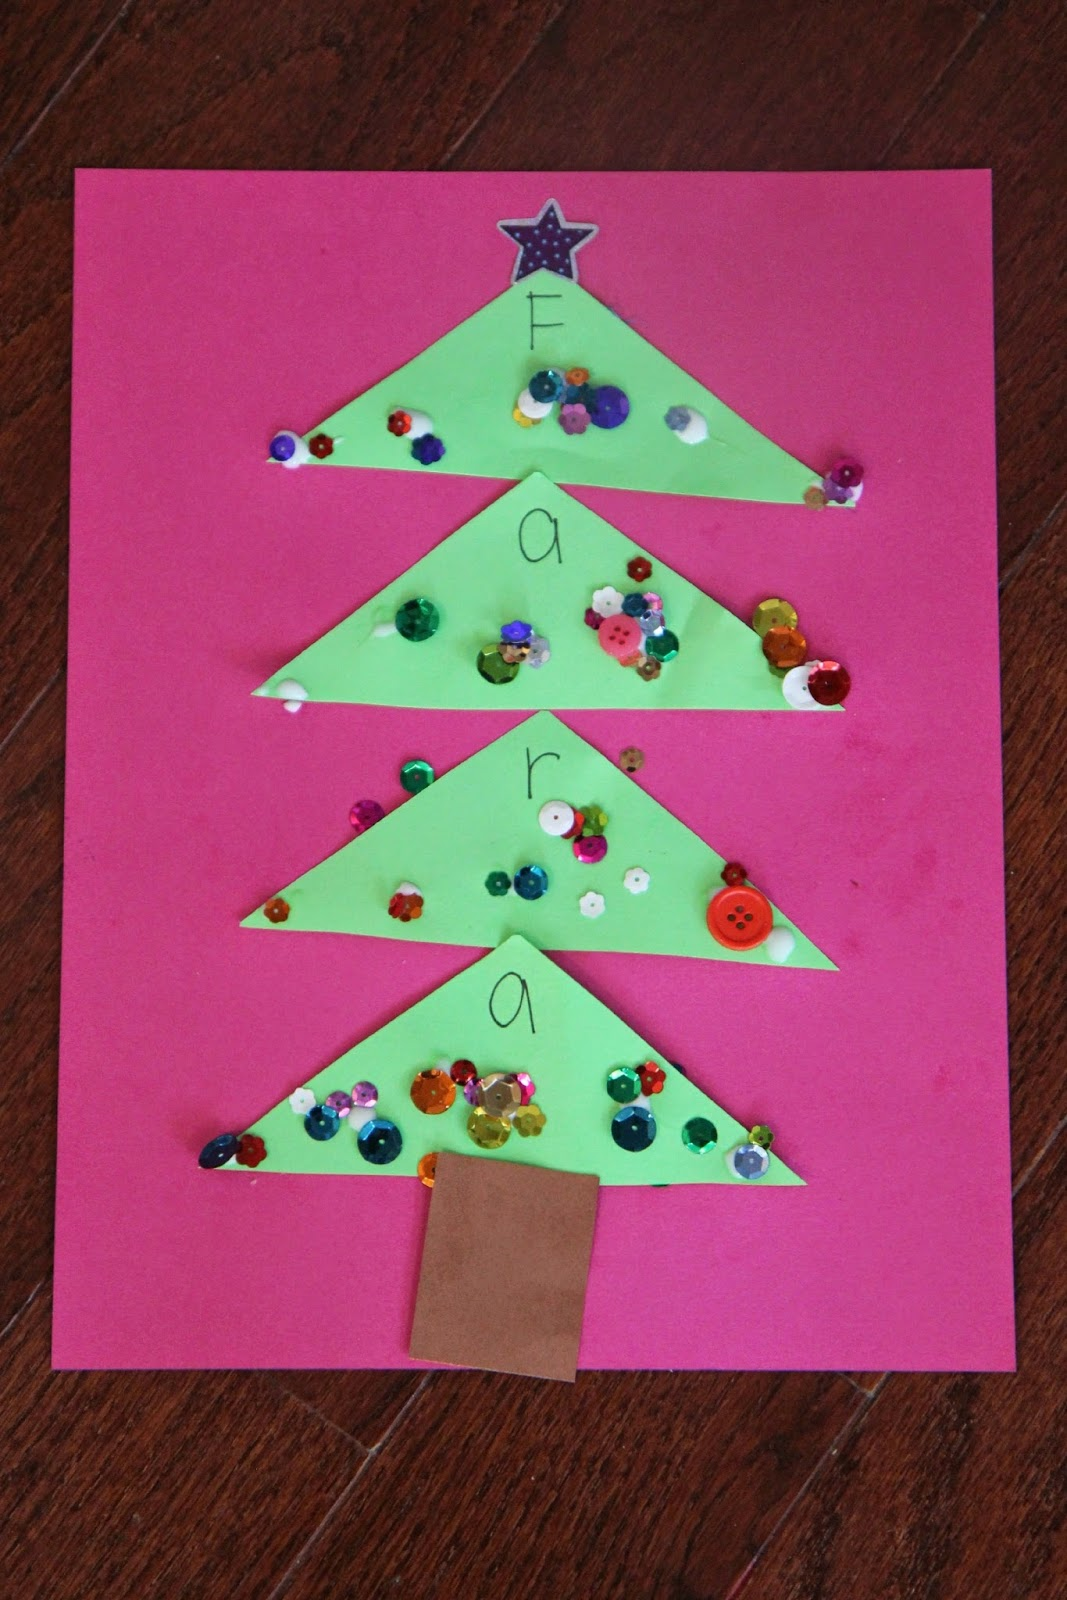 Toddler Approved!: Sparkly Name Christmas Tree Craft for Kids